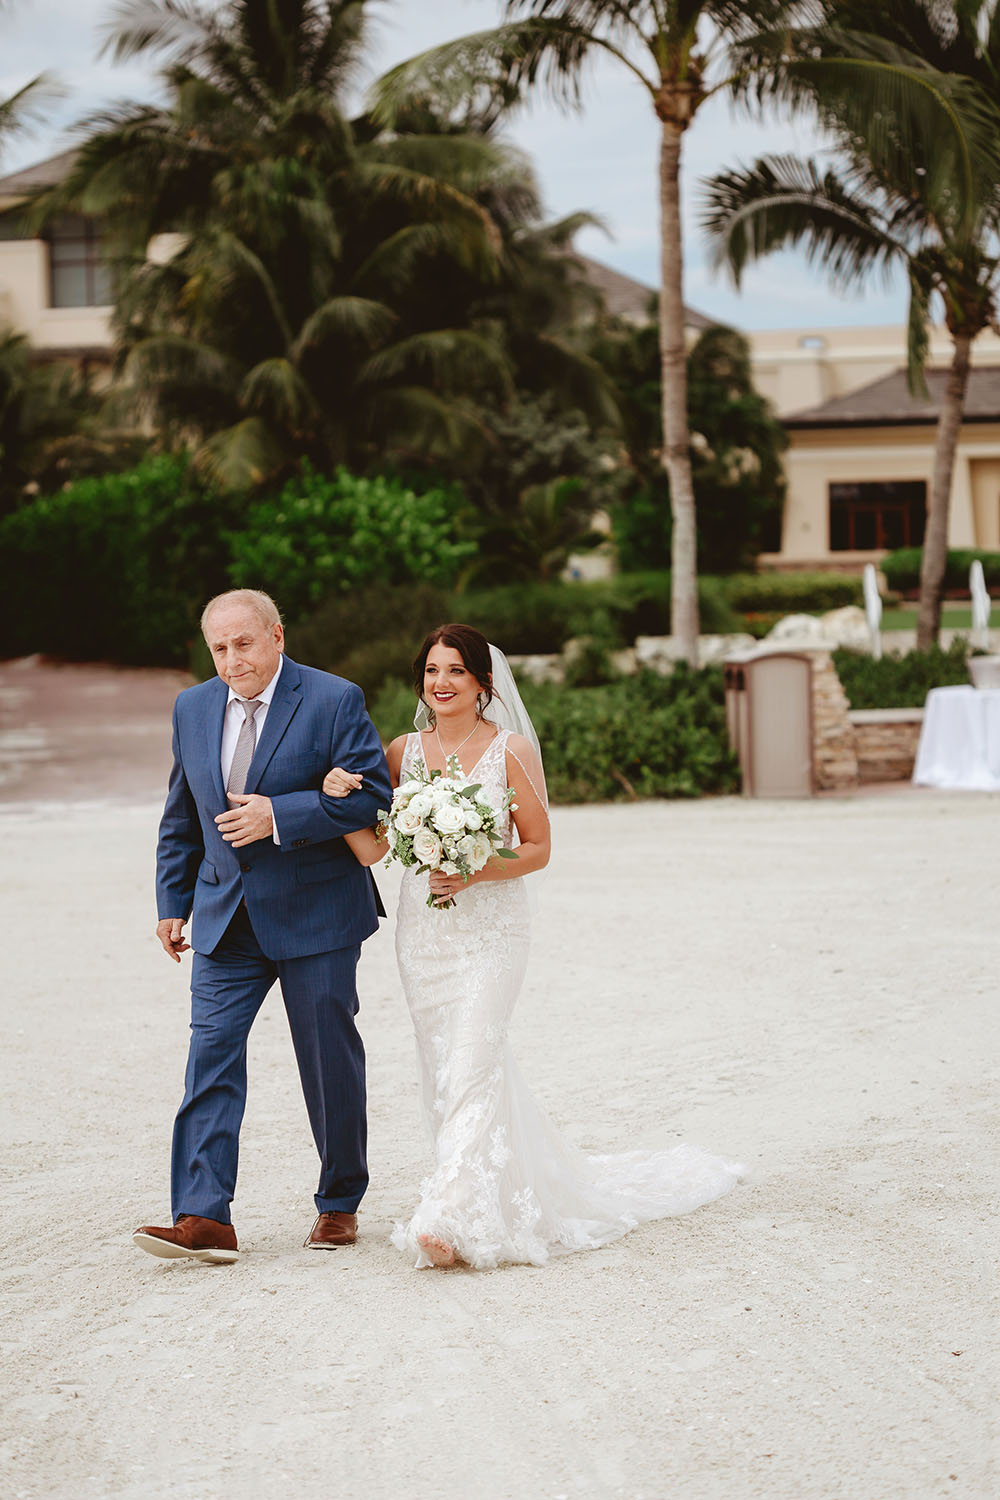 Naples Wedding Photographer, bride and father of the bride walking together